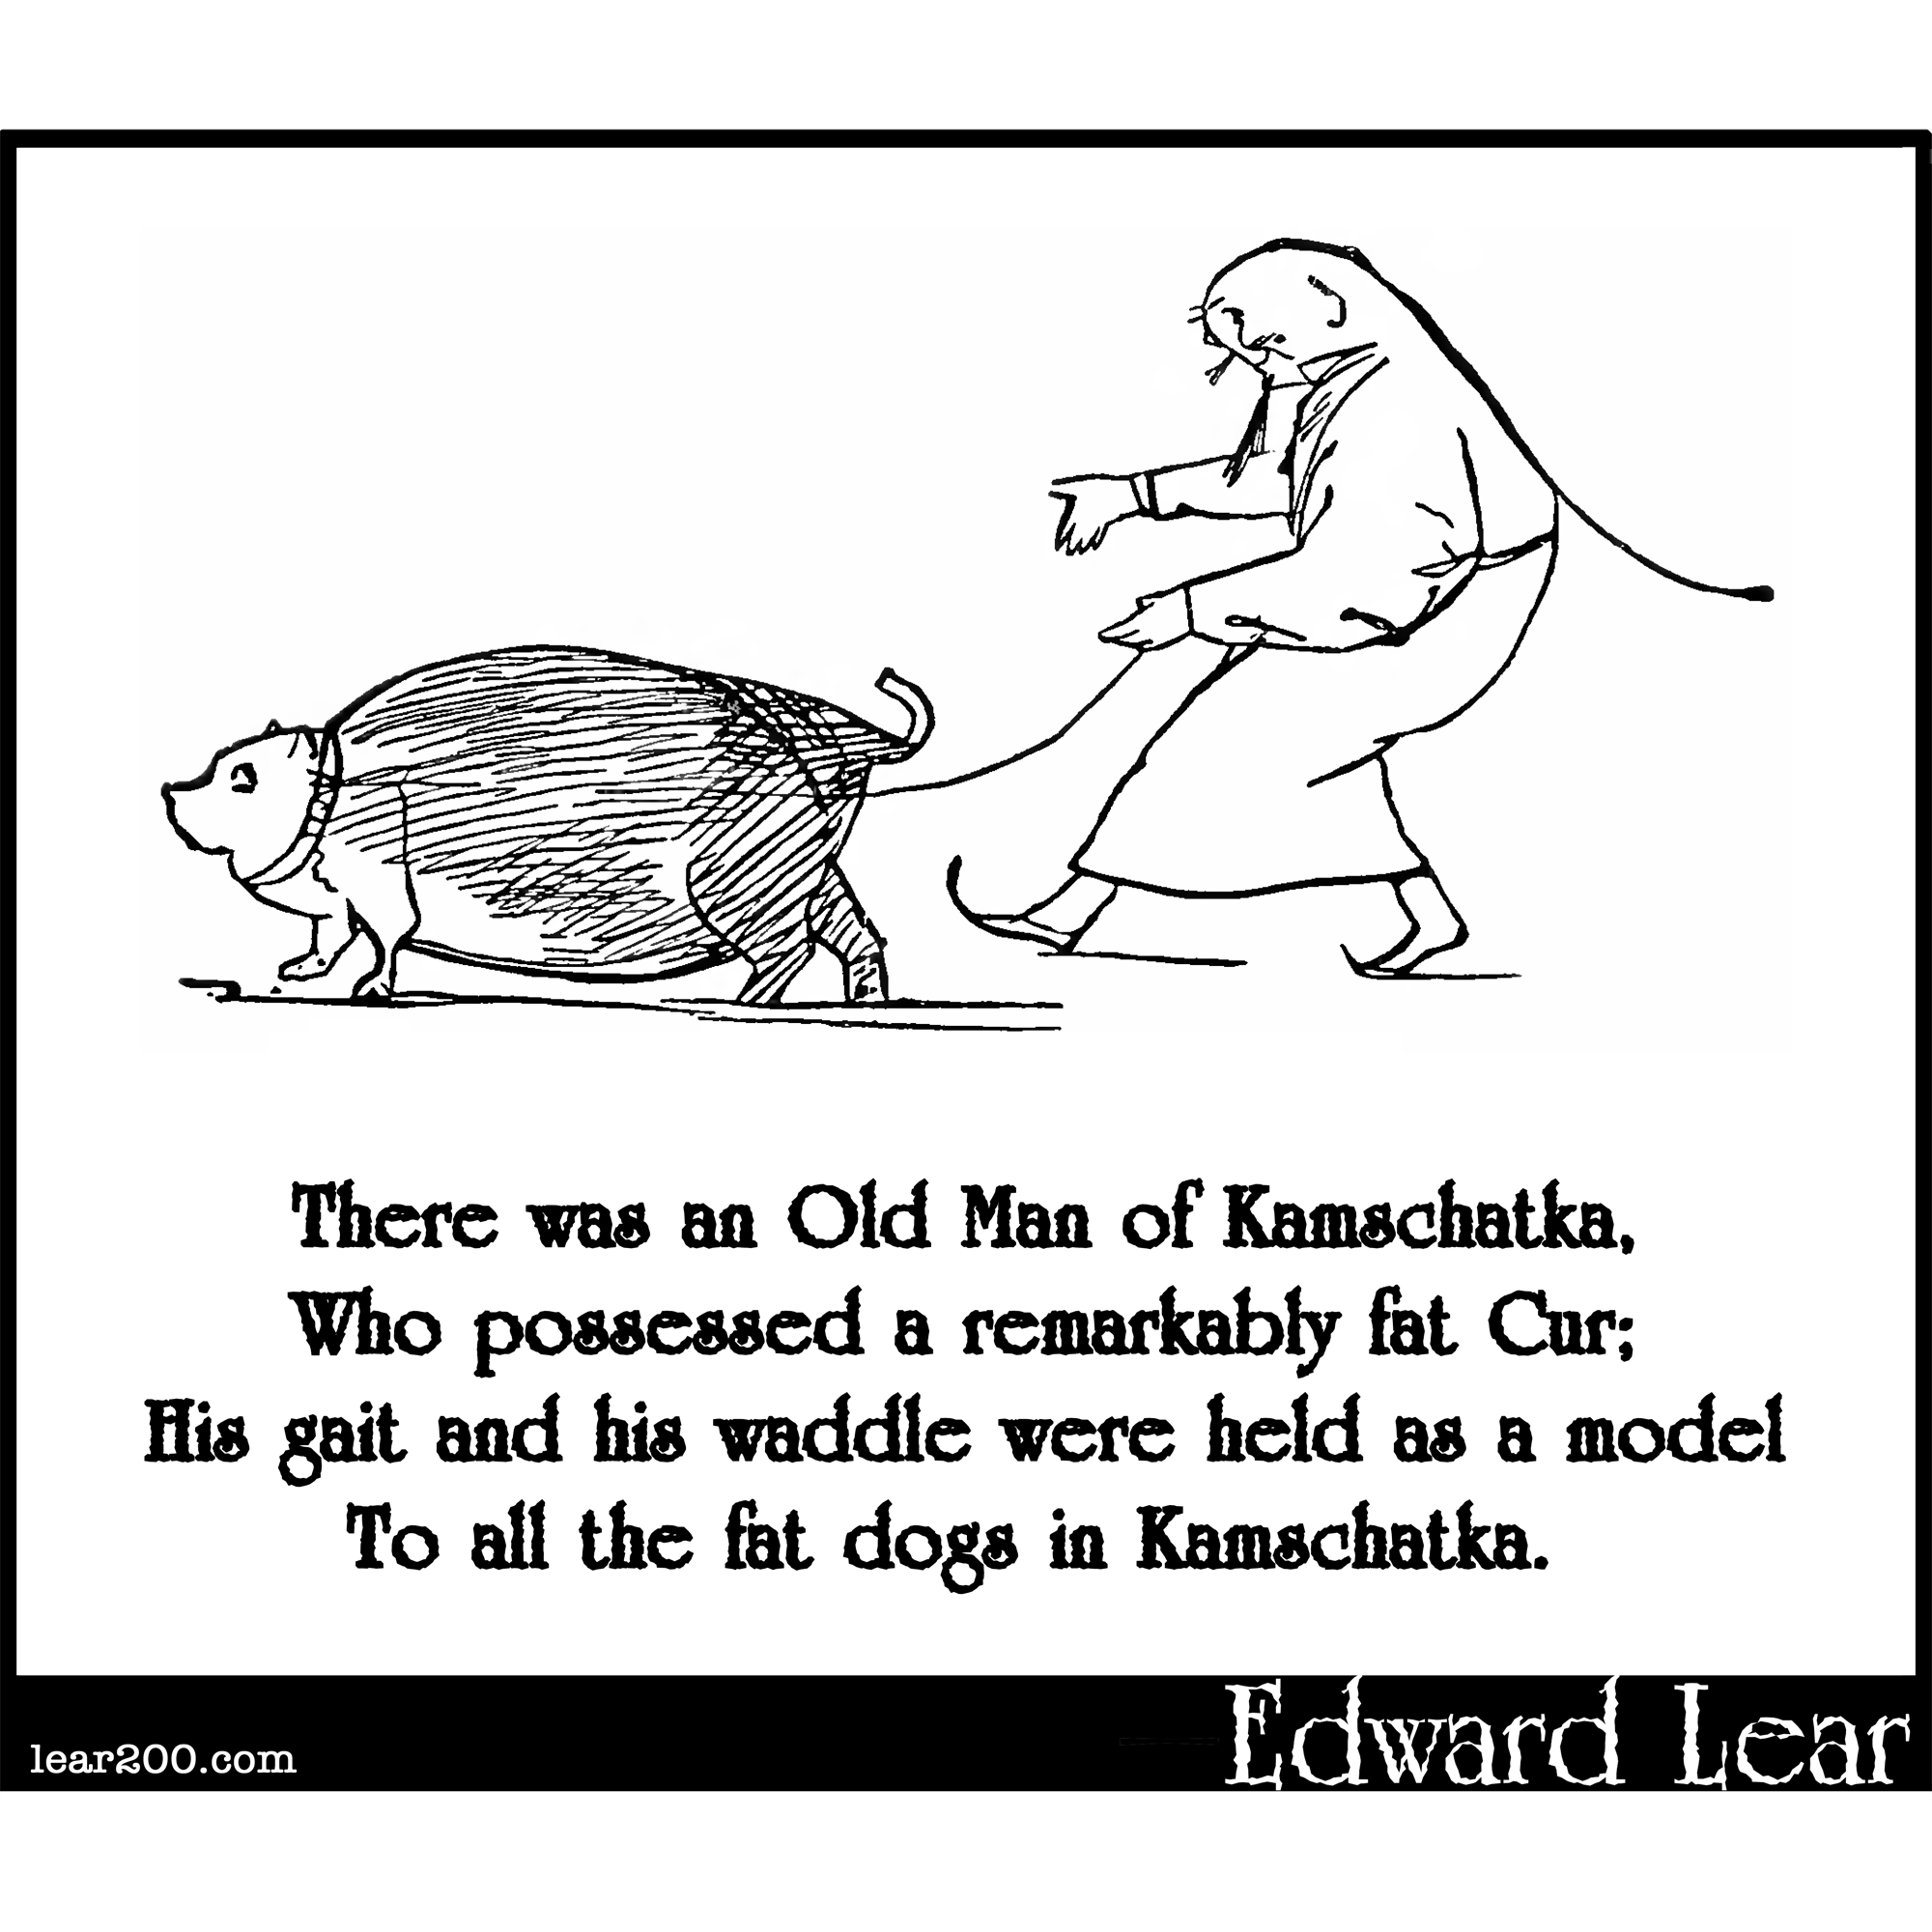 There was an Old Man of Kamschatka